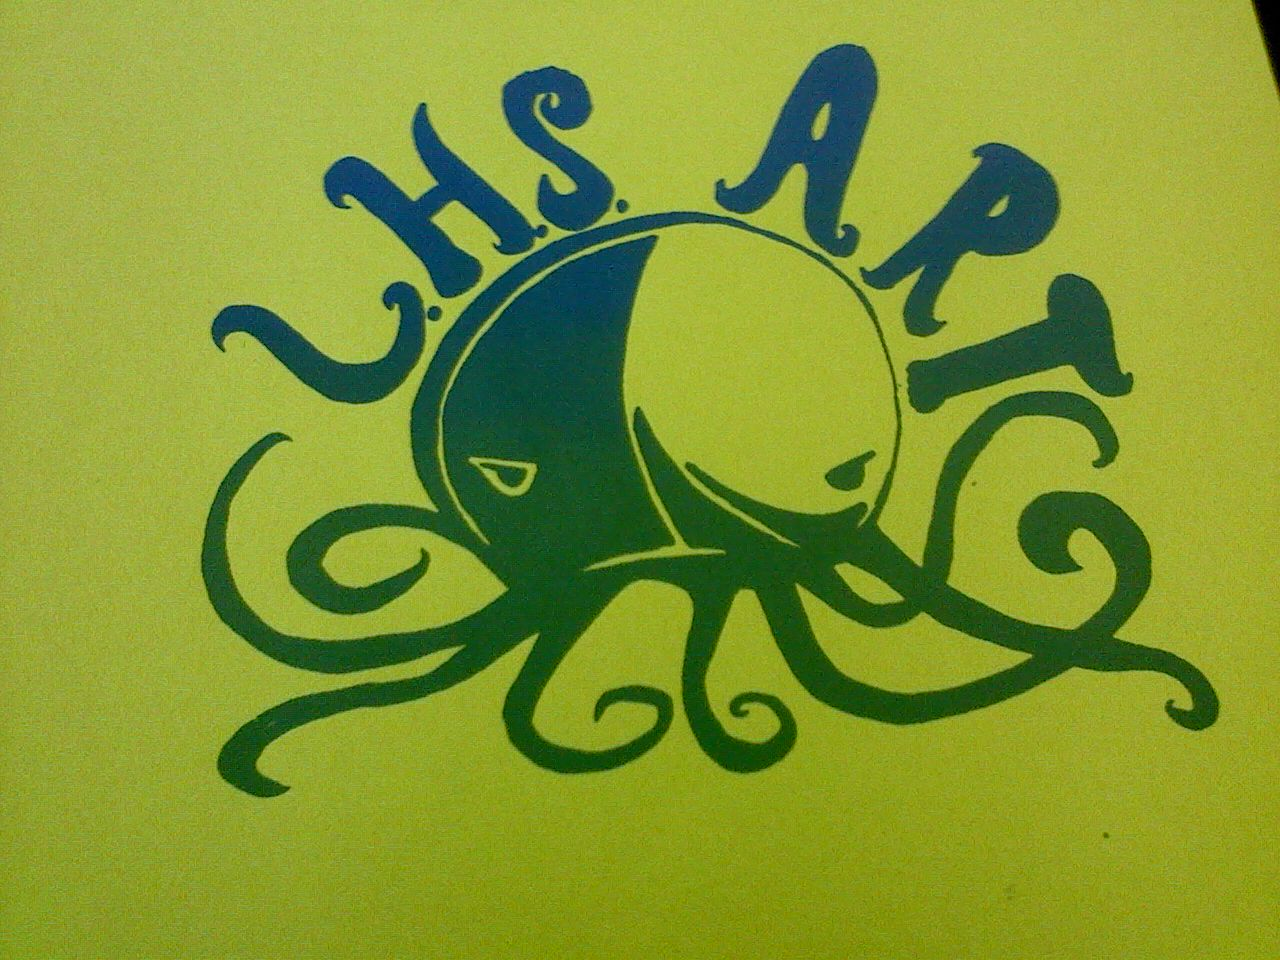 angry octopus drawing - photo #28